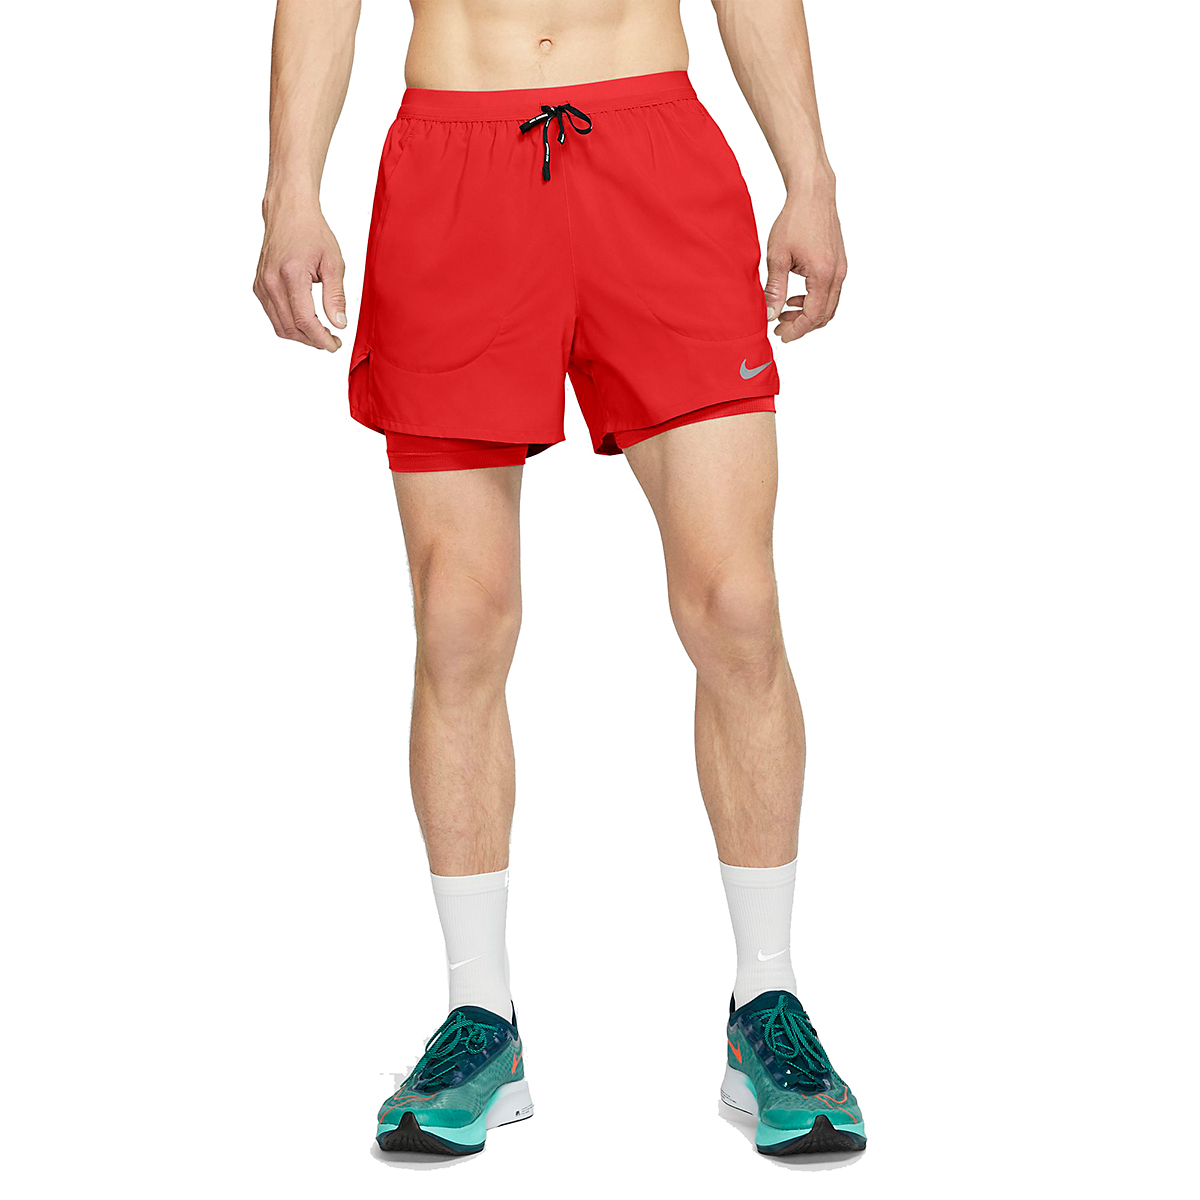 """Men's Nike Flex Stride 5"""" 2-In-1 Running Shorts - Color: Chile Red - Size: L, Chile Red, large, image 1"""